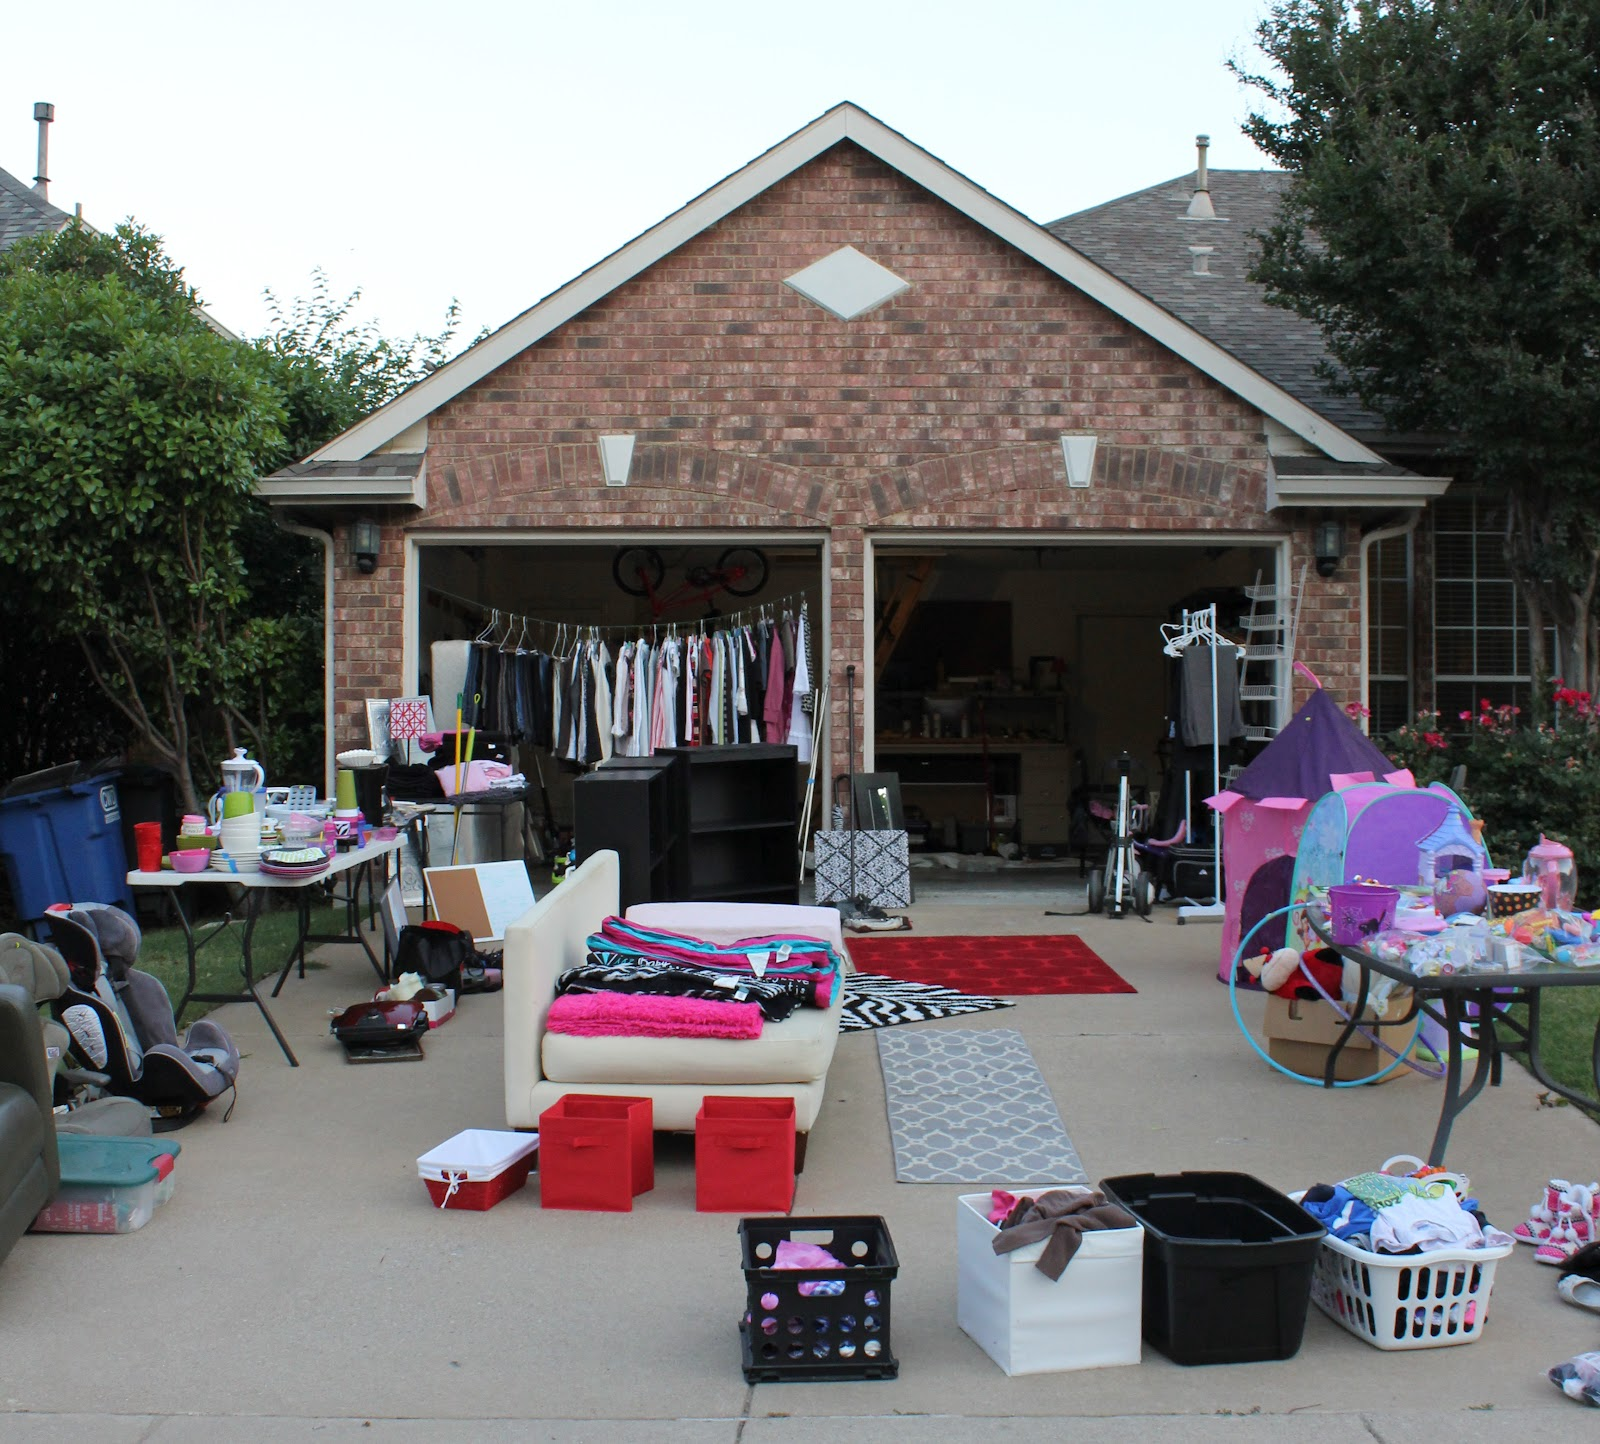 garage sales Have a garage sale is a great way to make extra cash these garage sale tips and pricing guidelines will help make your yard sale fun and profitable.